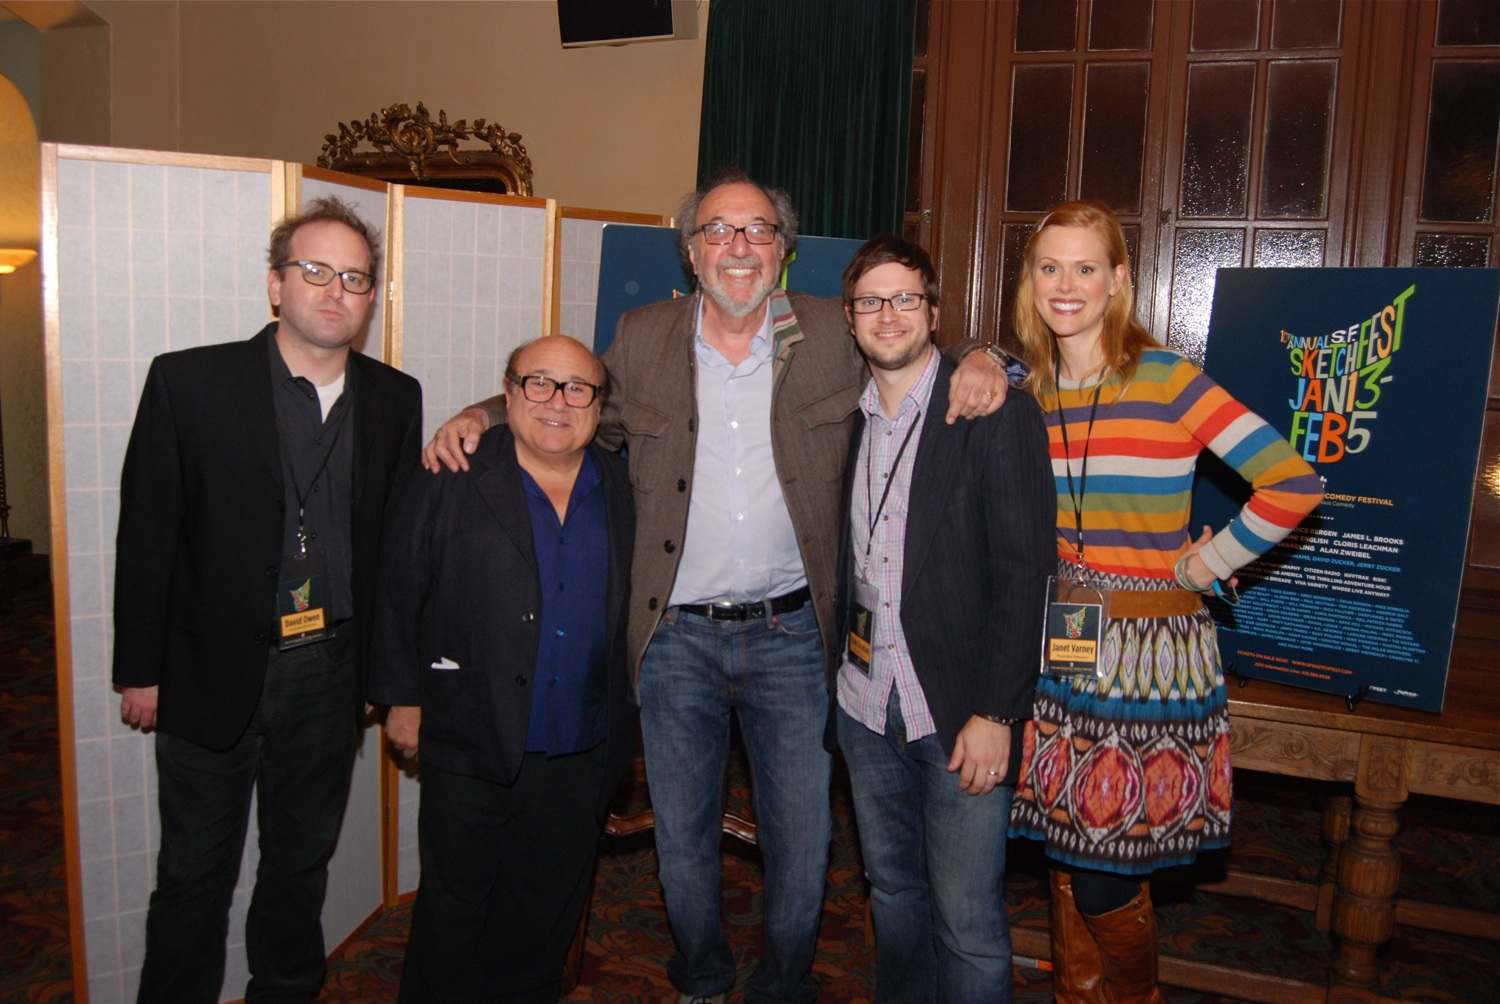 David Owen, Danny DeVito, James L. Brooks and Janet Varney. Photo by Jakub Mosur.